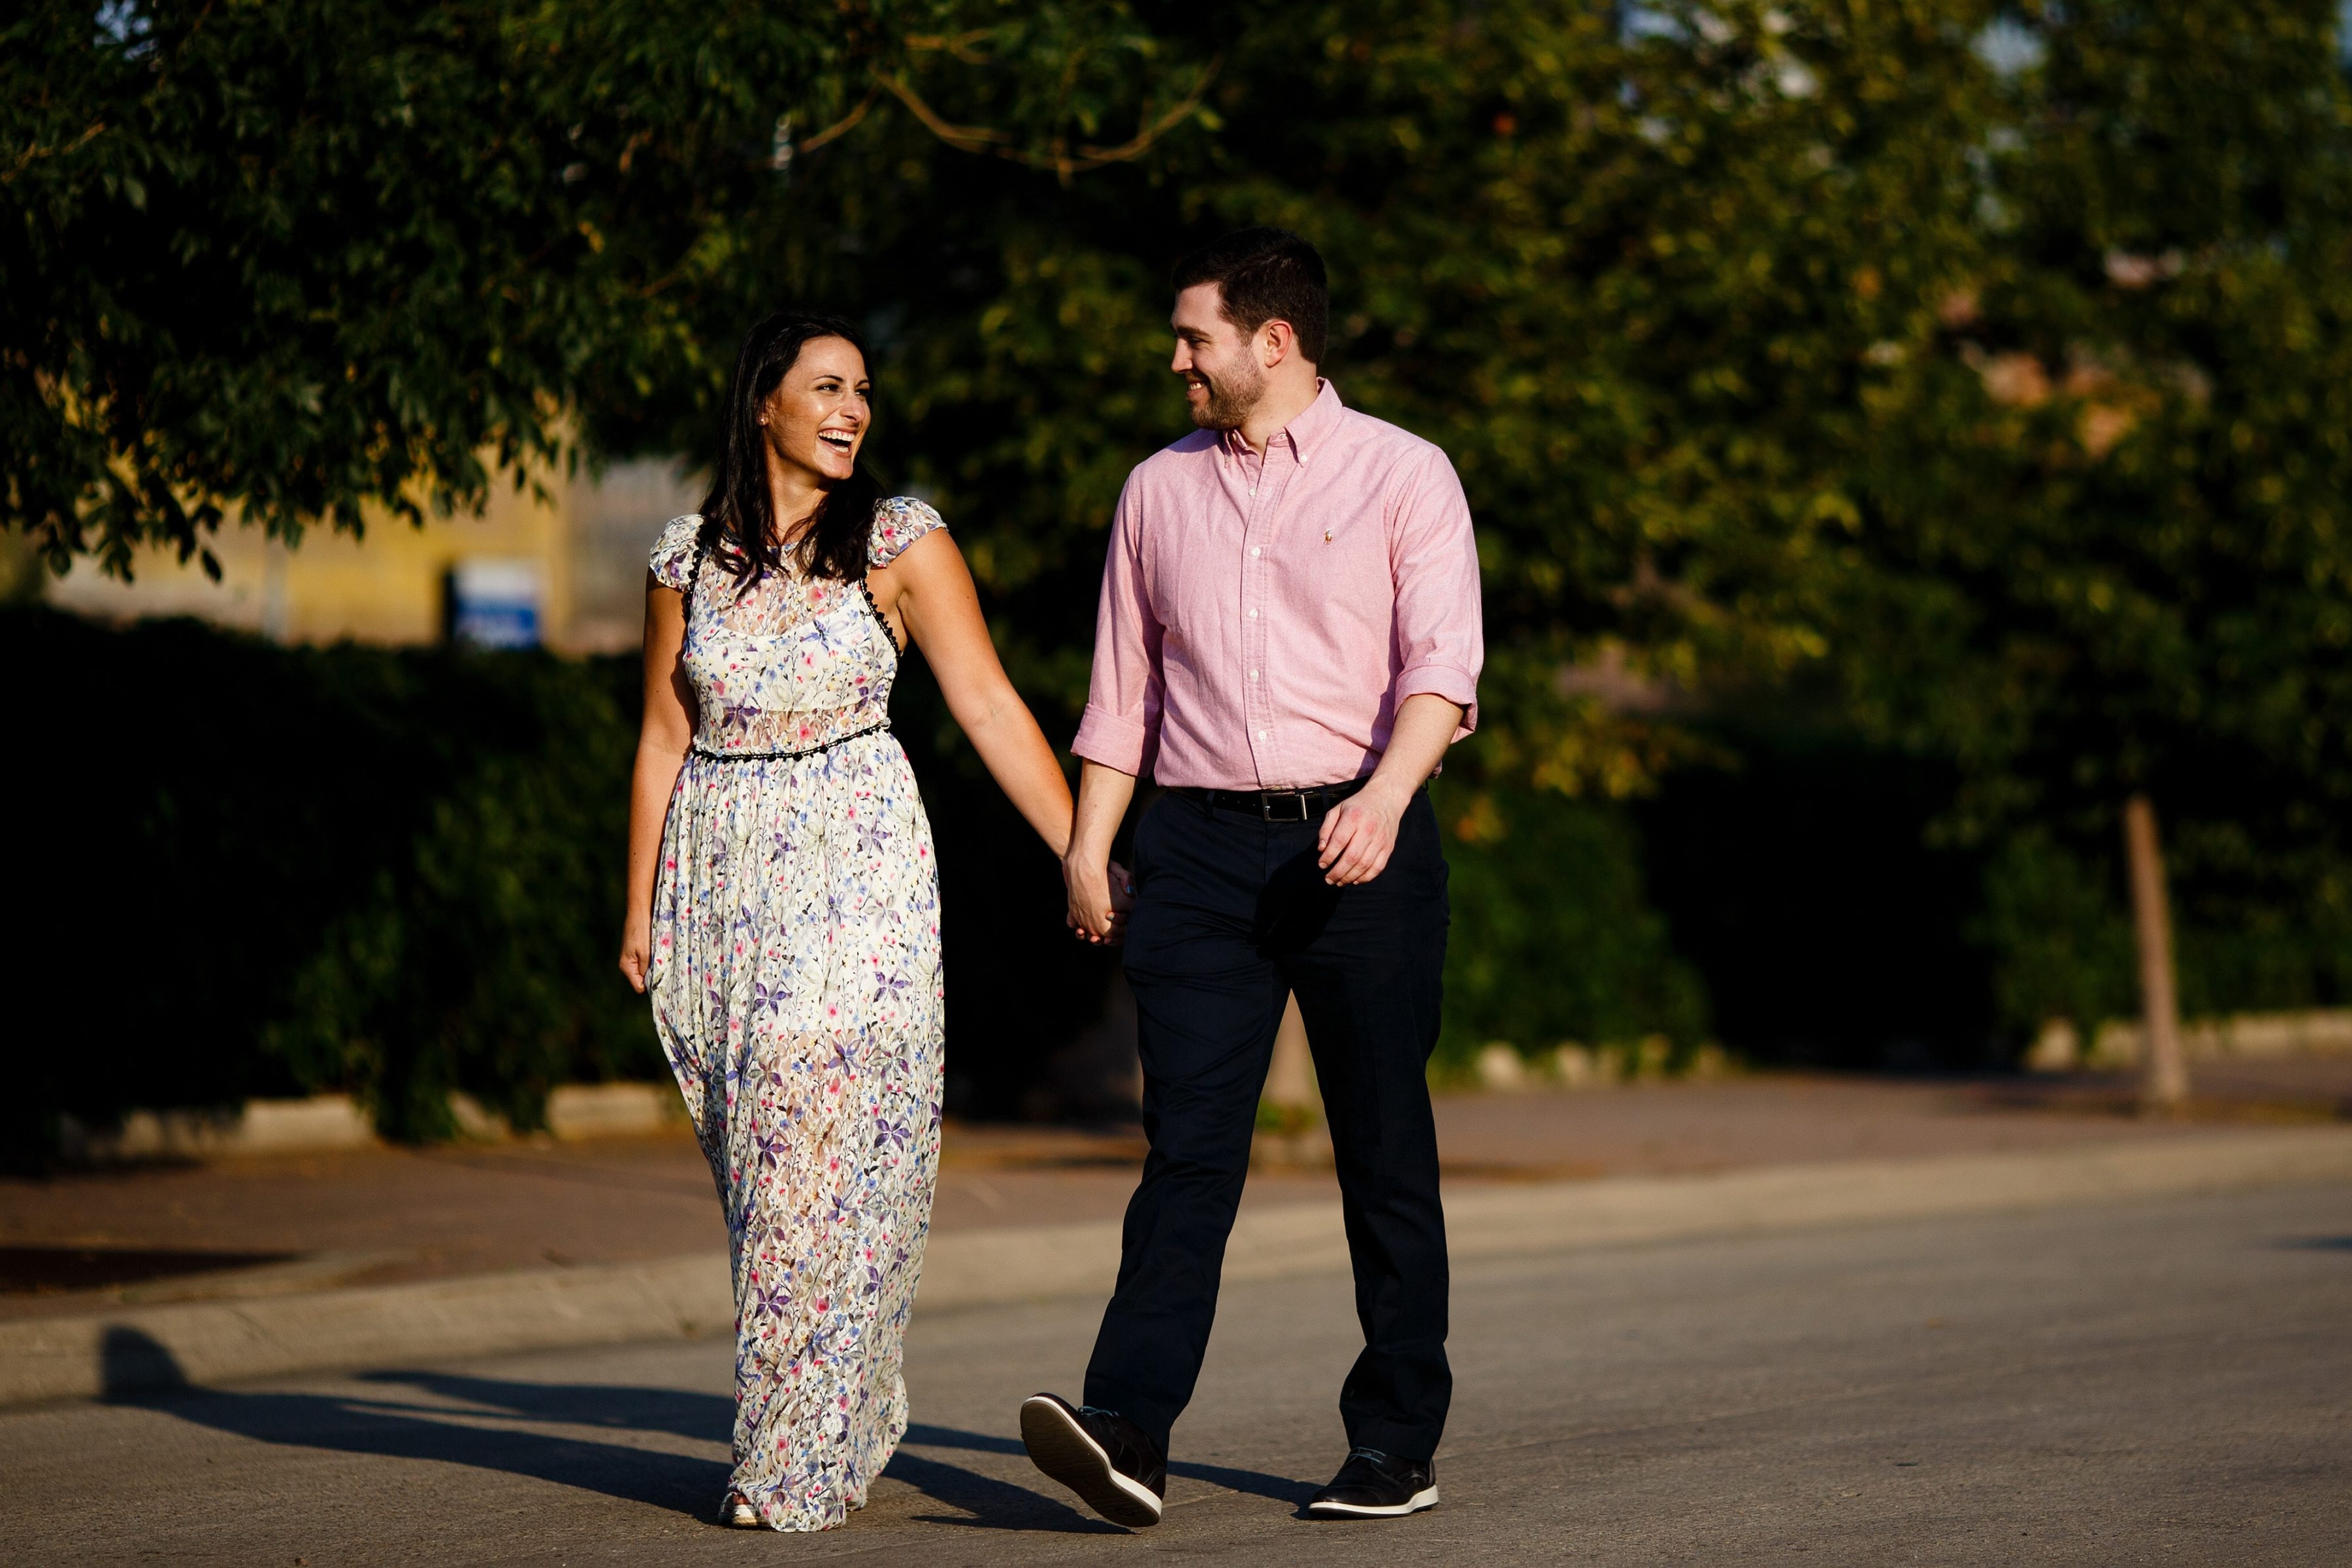 Danielle and Jordan walk together in lower downtown Denver during their engagement photos